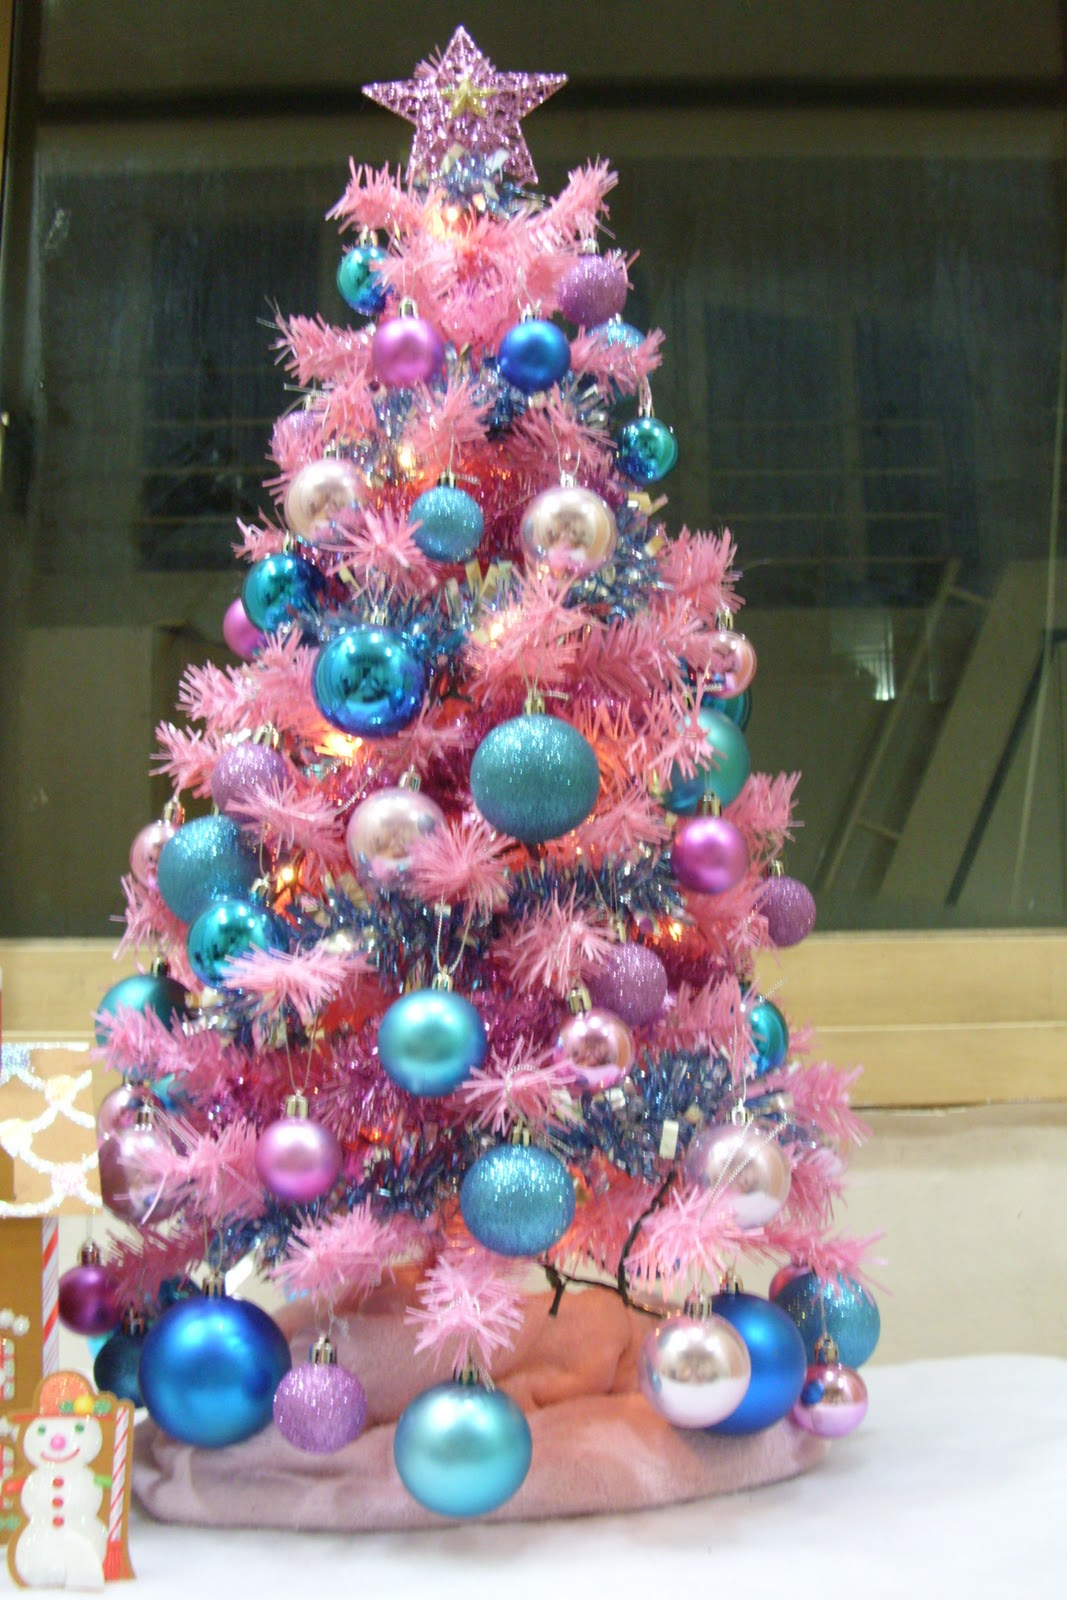 Kelsey in Korea: Oh! Christmas Tree!